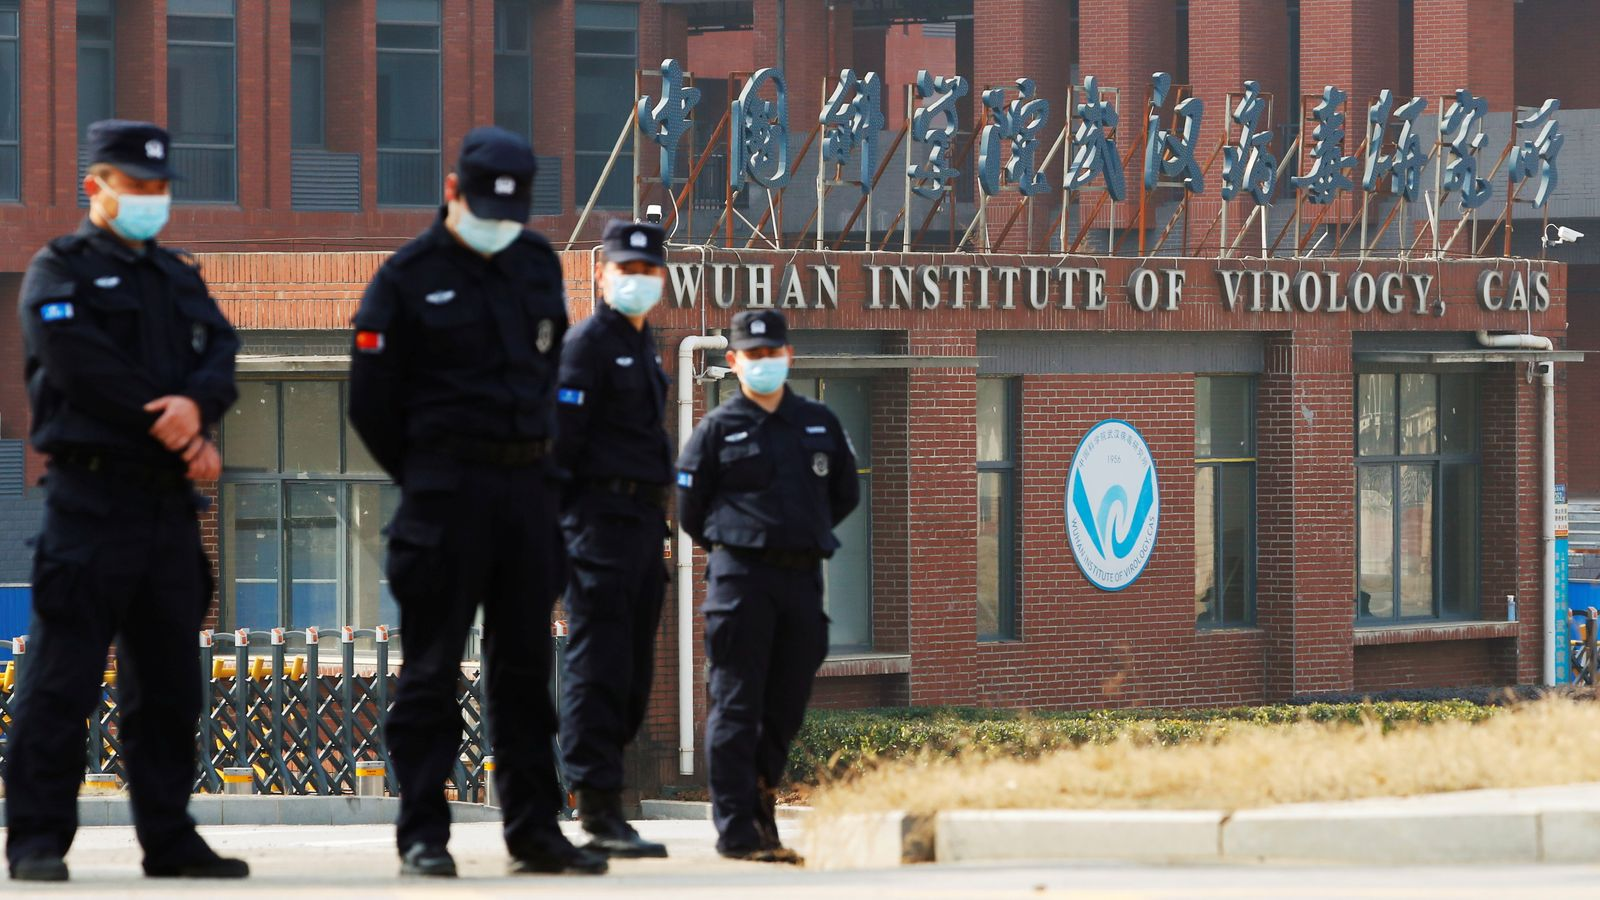 COVID-19: What Is The Wuhan Coronavirus Lab Leak Theory And Why Is It Being Taken Seriously?